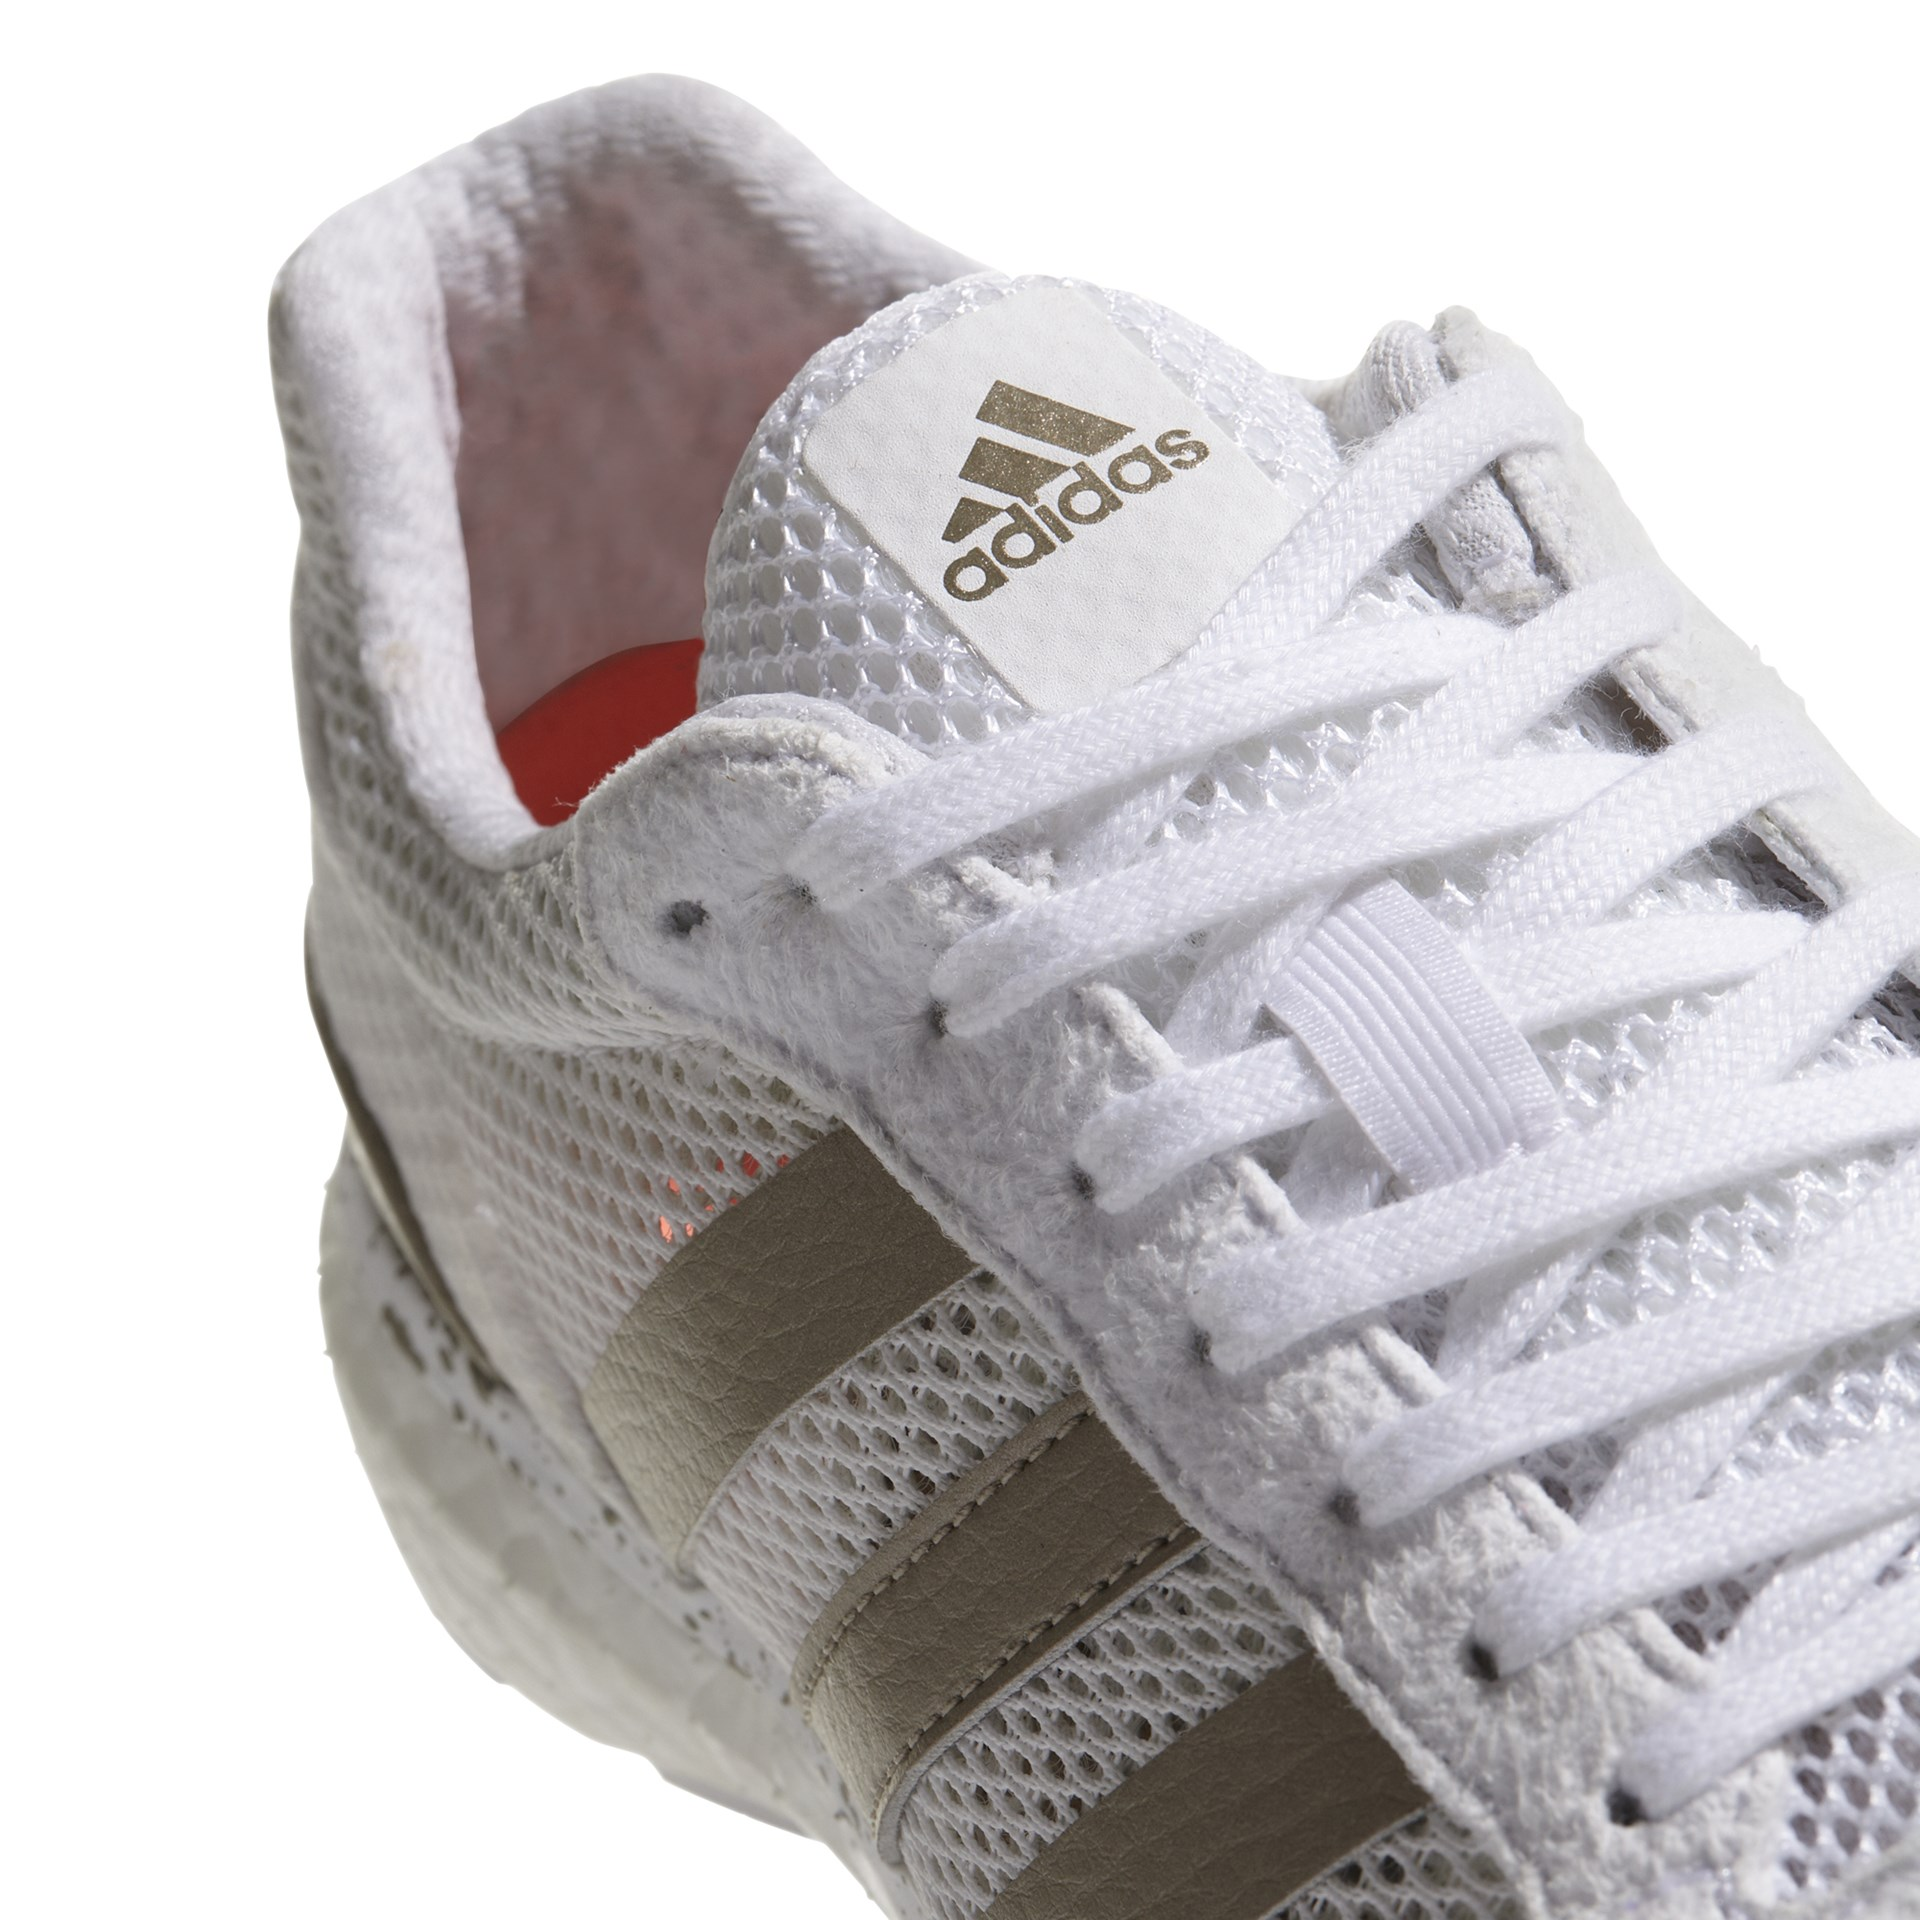 huge selection of 92b57 f0018 ... Bilde ADIDAS Adizero Adios løpesko dame - BB6409 - Hvit ...